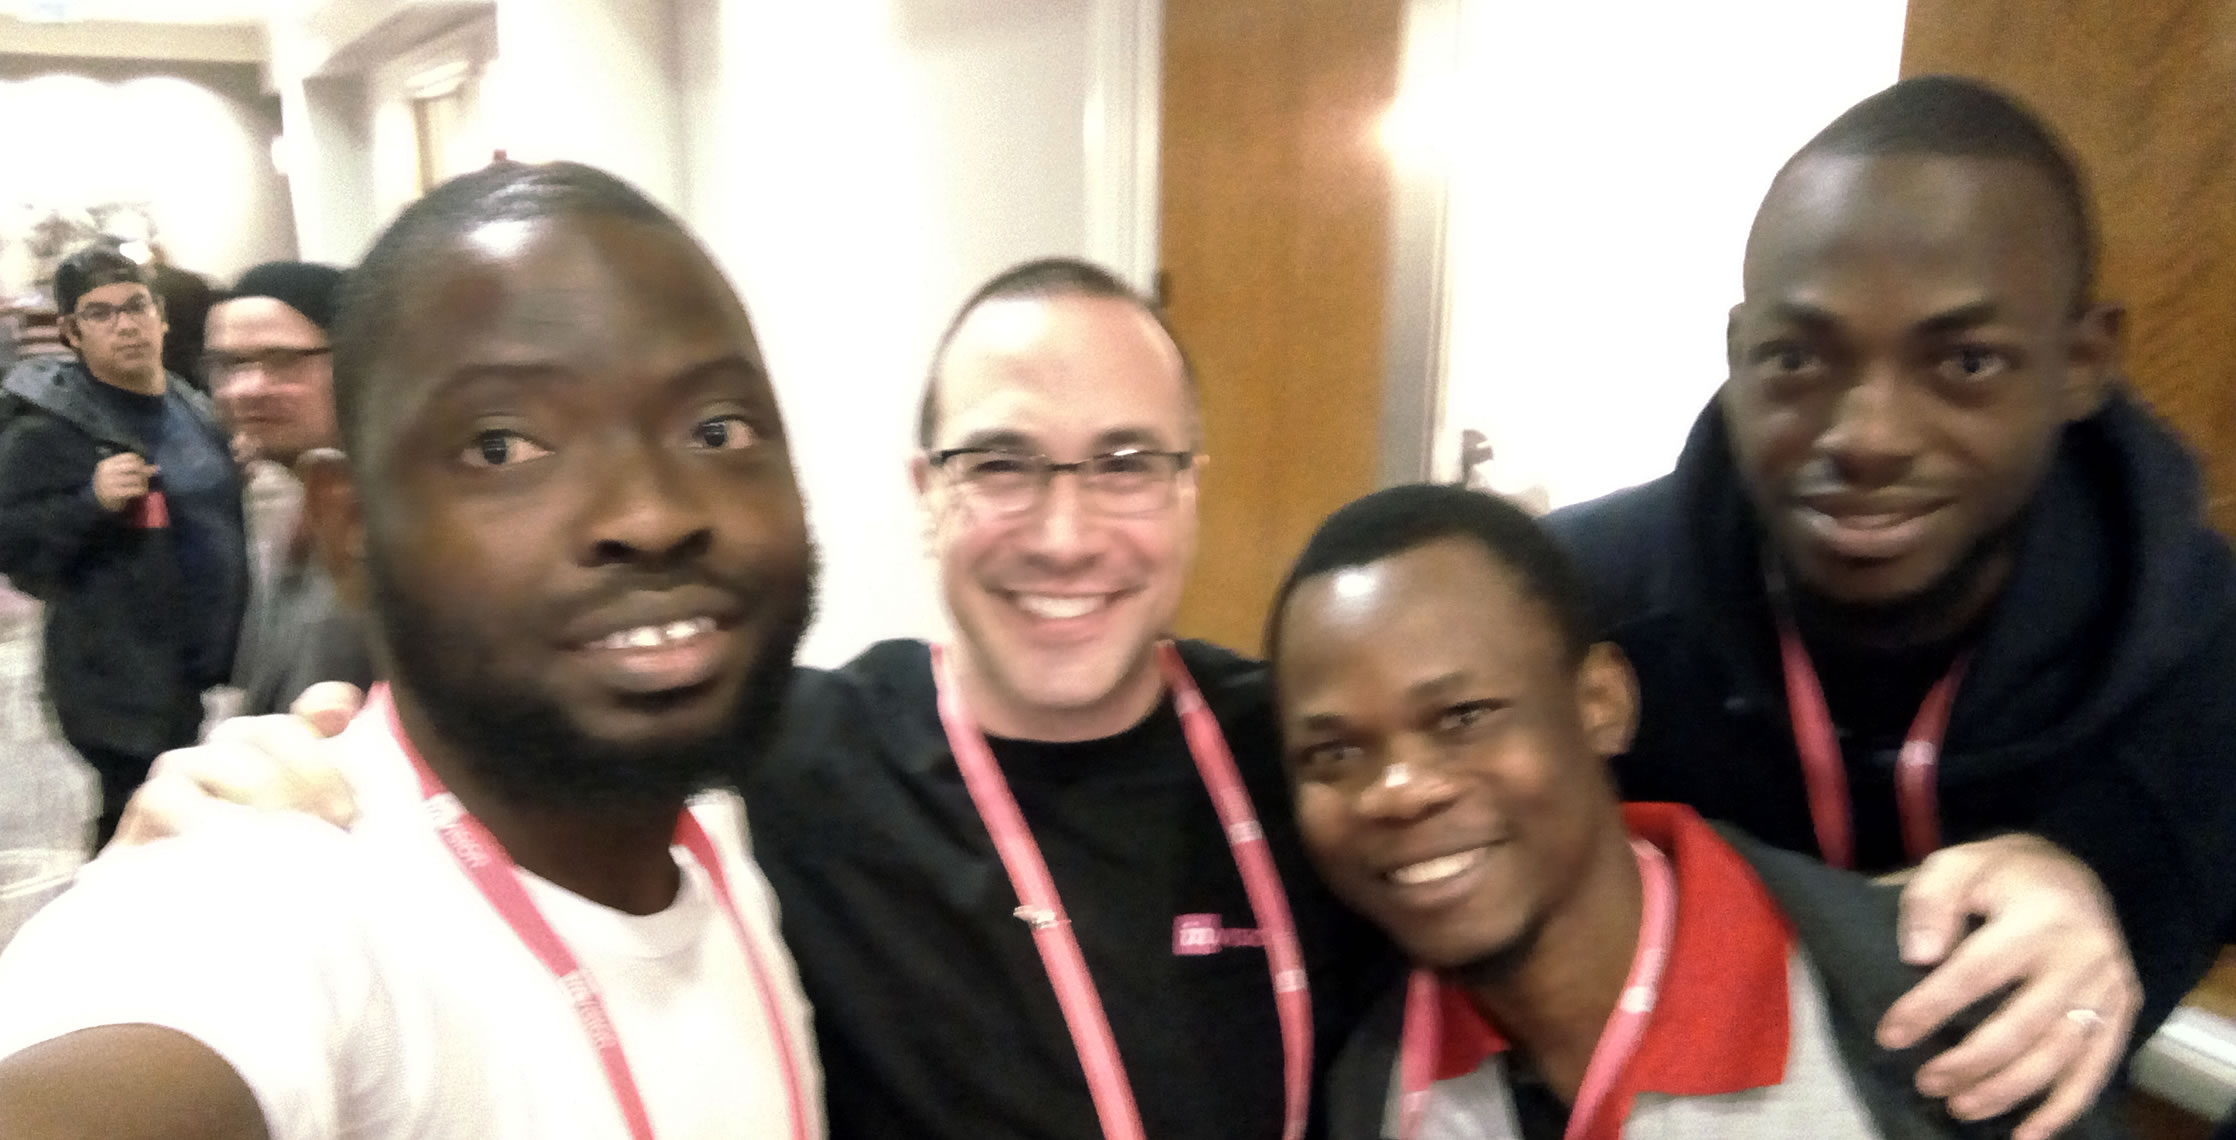 Ben Nadel at InVision In Real Life (IRL) 2018 (Hollywood, CA) with: Azeez Olaniran and Adebayo Maborukoje and Jorg Are